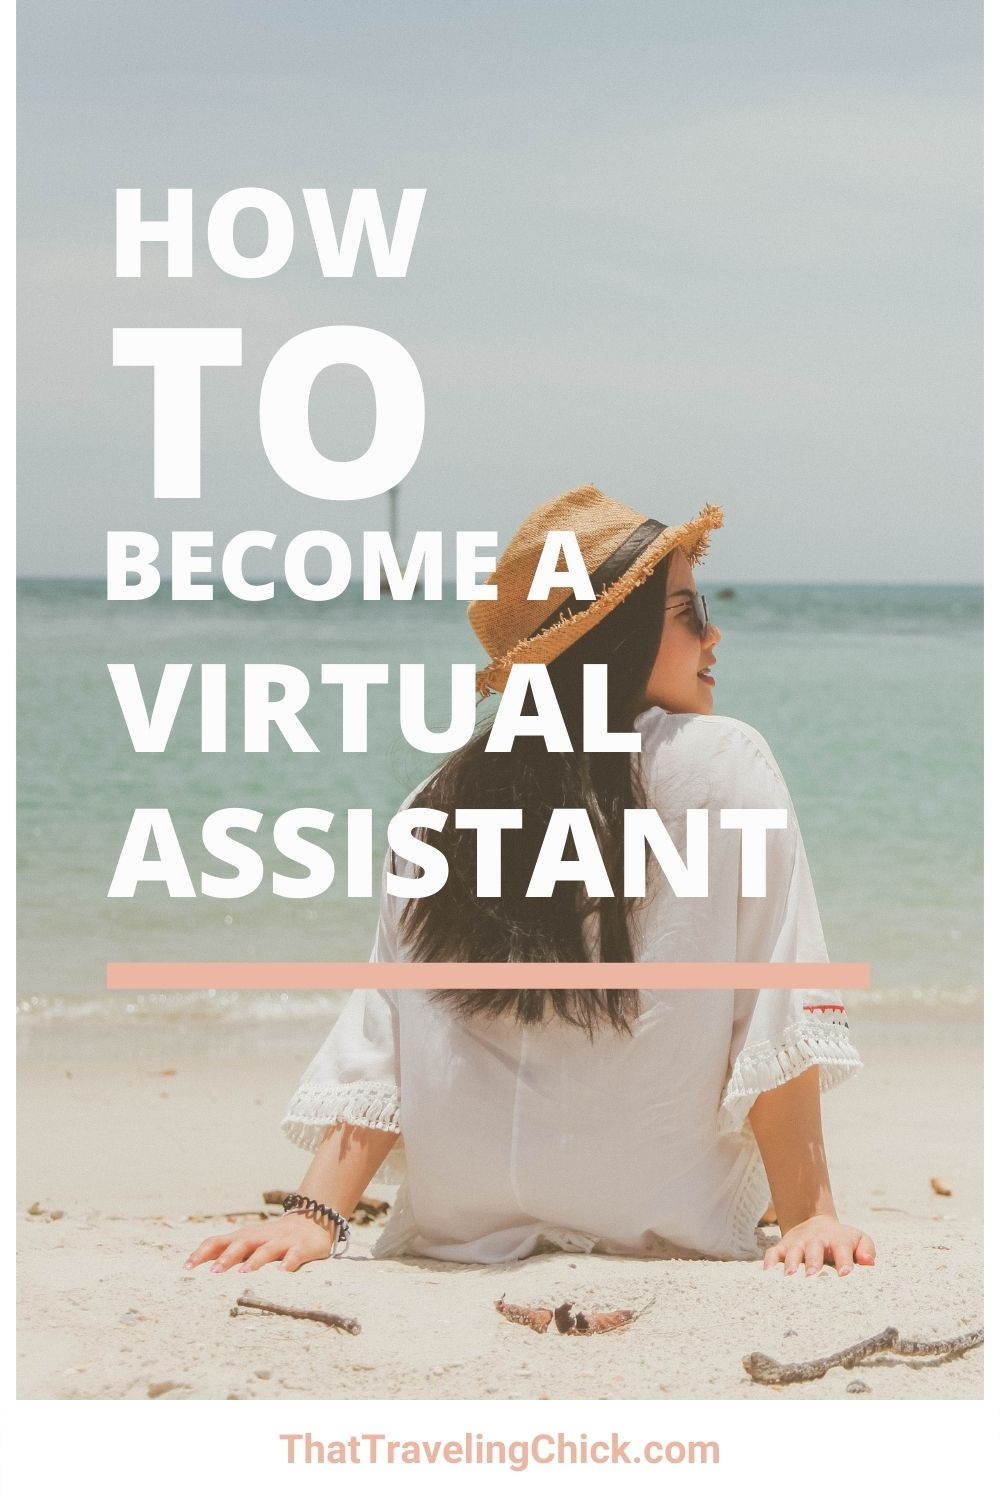 How to Become a Virtual Assistant #virtualassistant #howtobecomeava #workfromhome